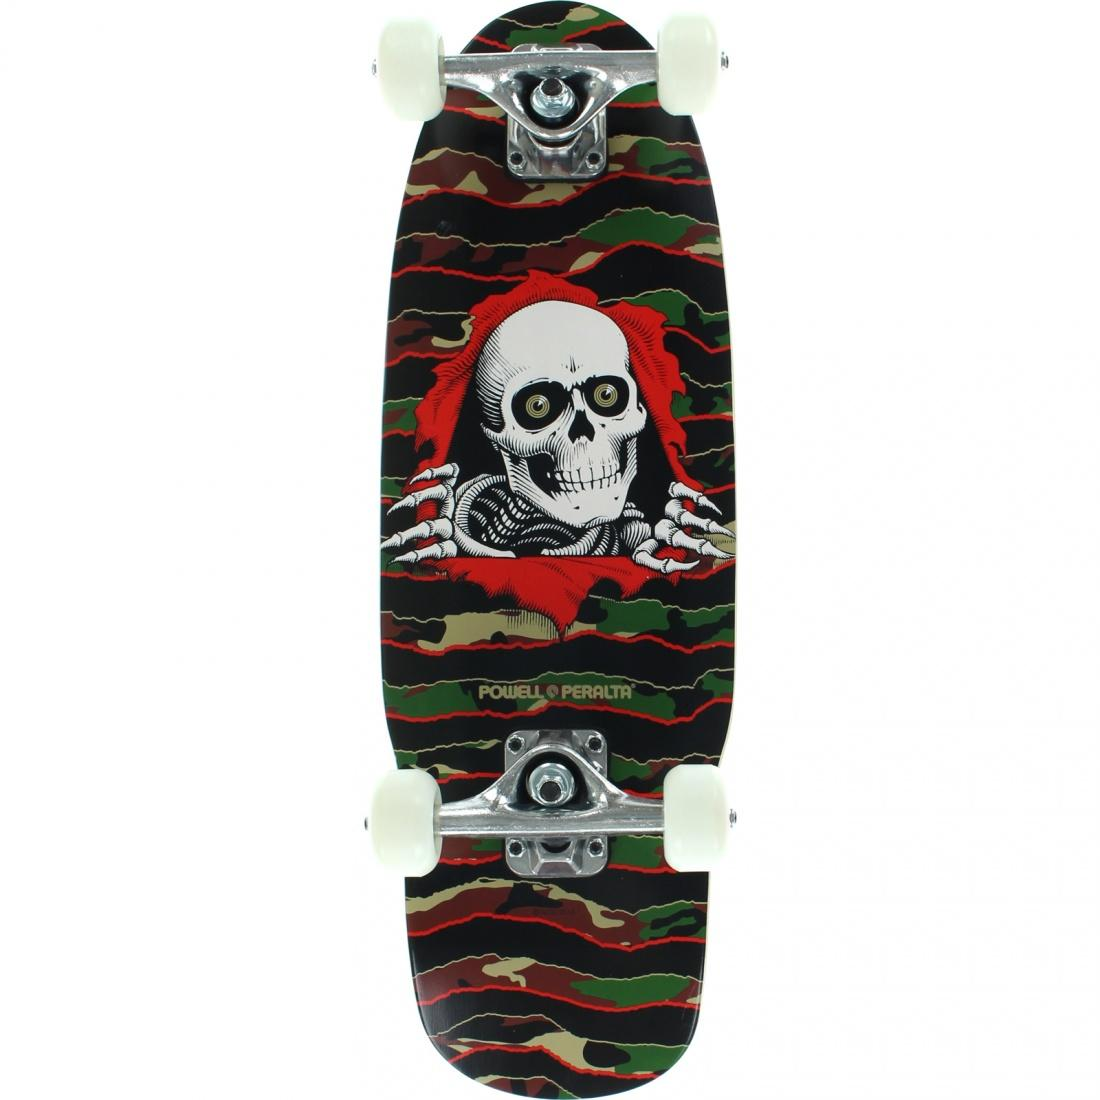 Powell Peralta Скейтборд в сборе Powell Peralta Micro Mini Ripper 05 Camo 7.5 powell peralta скейтборд в сборе powell peralta micro mini ripper 05 camo 7 5